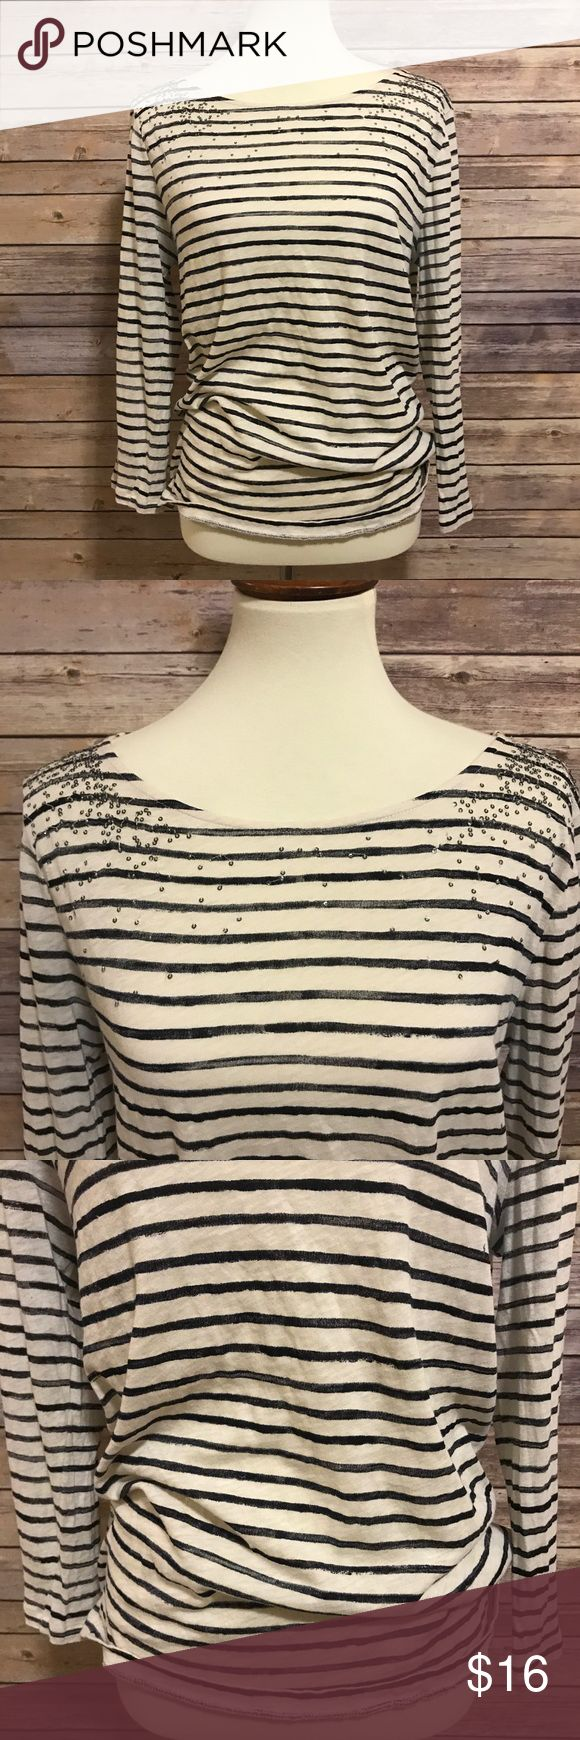 J.Crew Factory striped 3/4 sleeve sequin top Factory outlet top! Cute shirt with minor fading in the armpits. Sleeves 3/4 length. Sequin on the shoulder area. Chest 38/ length 24.5. J.Crew Factory Tops